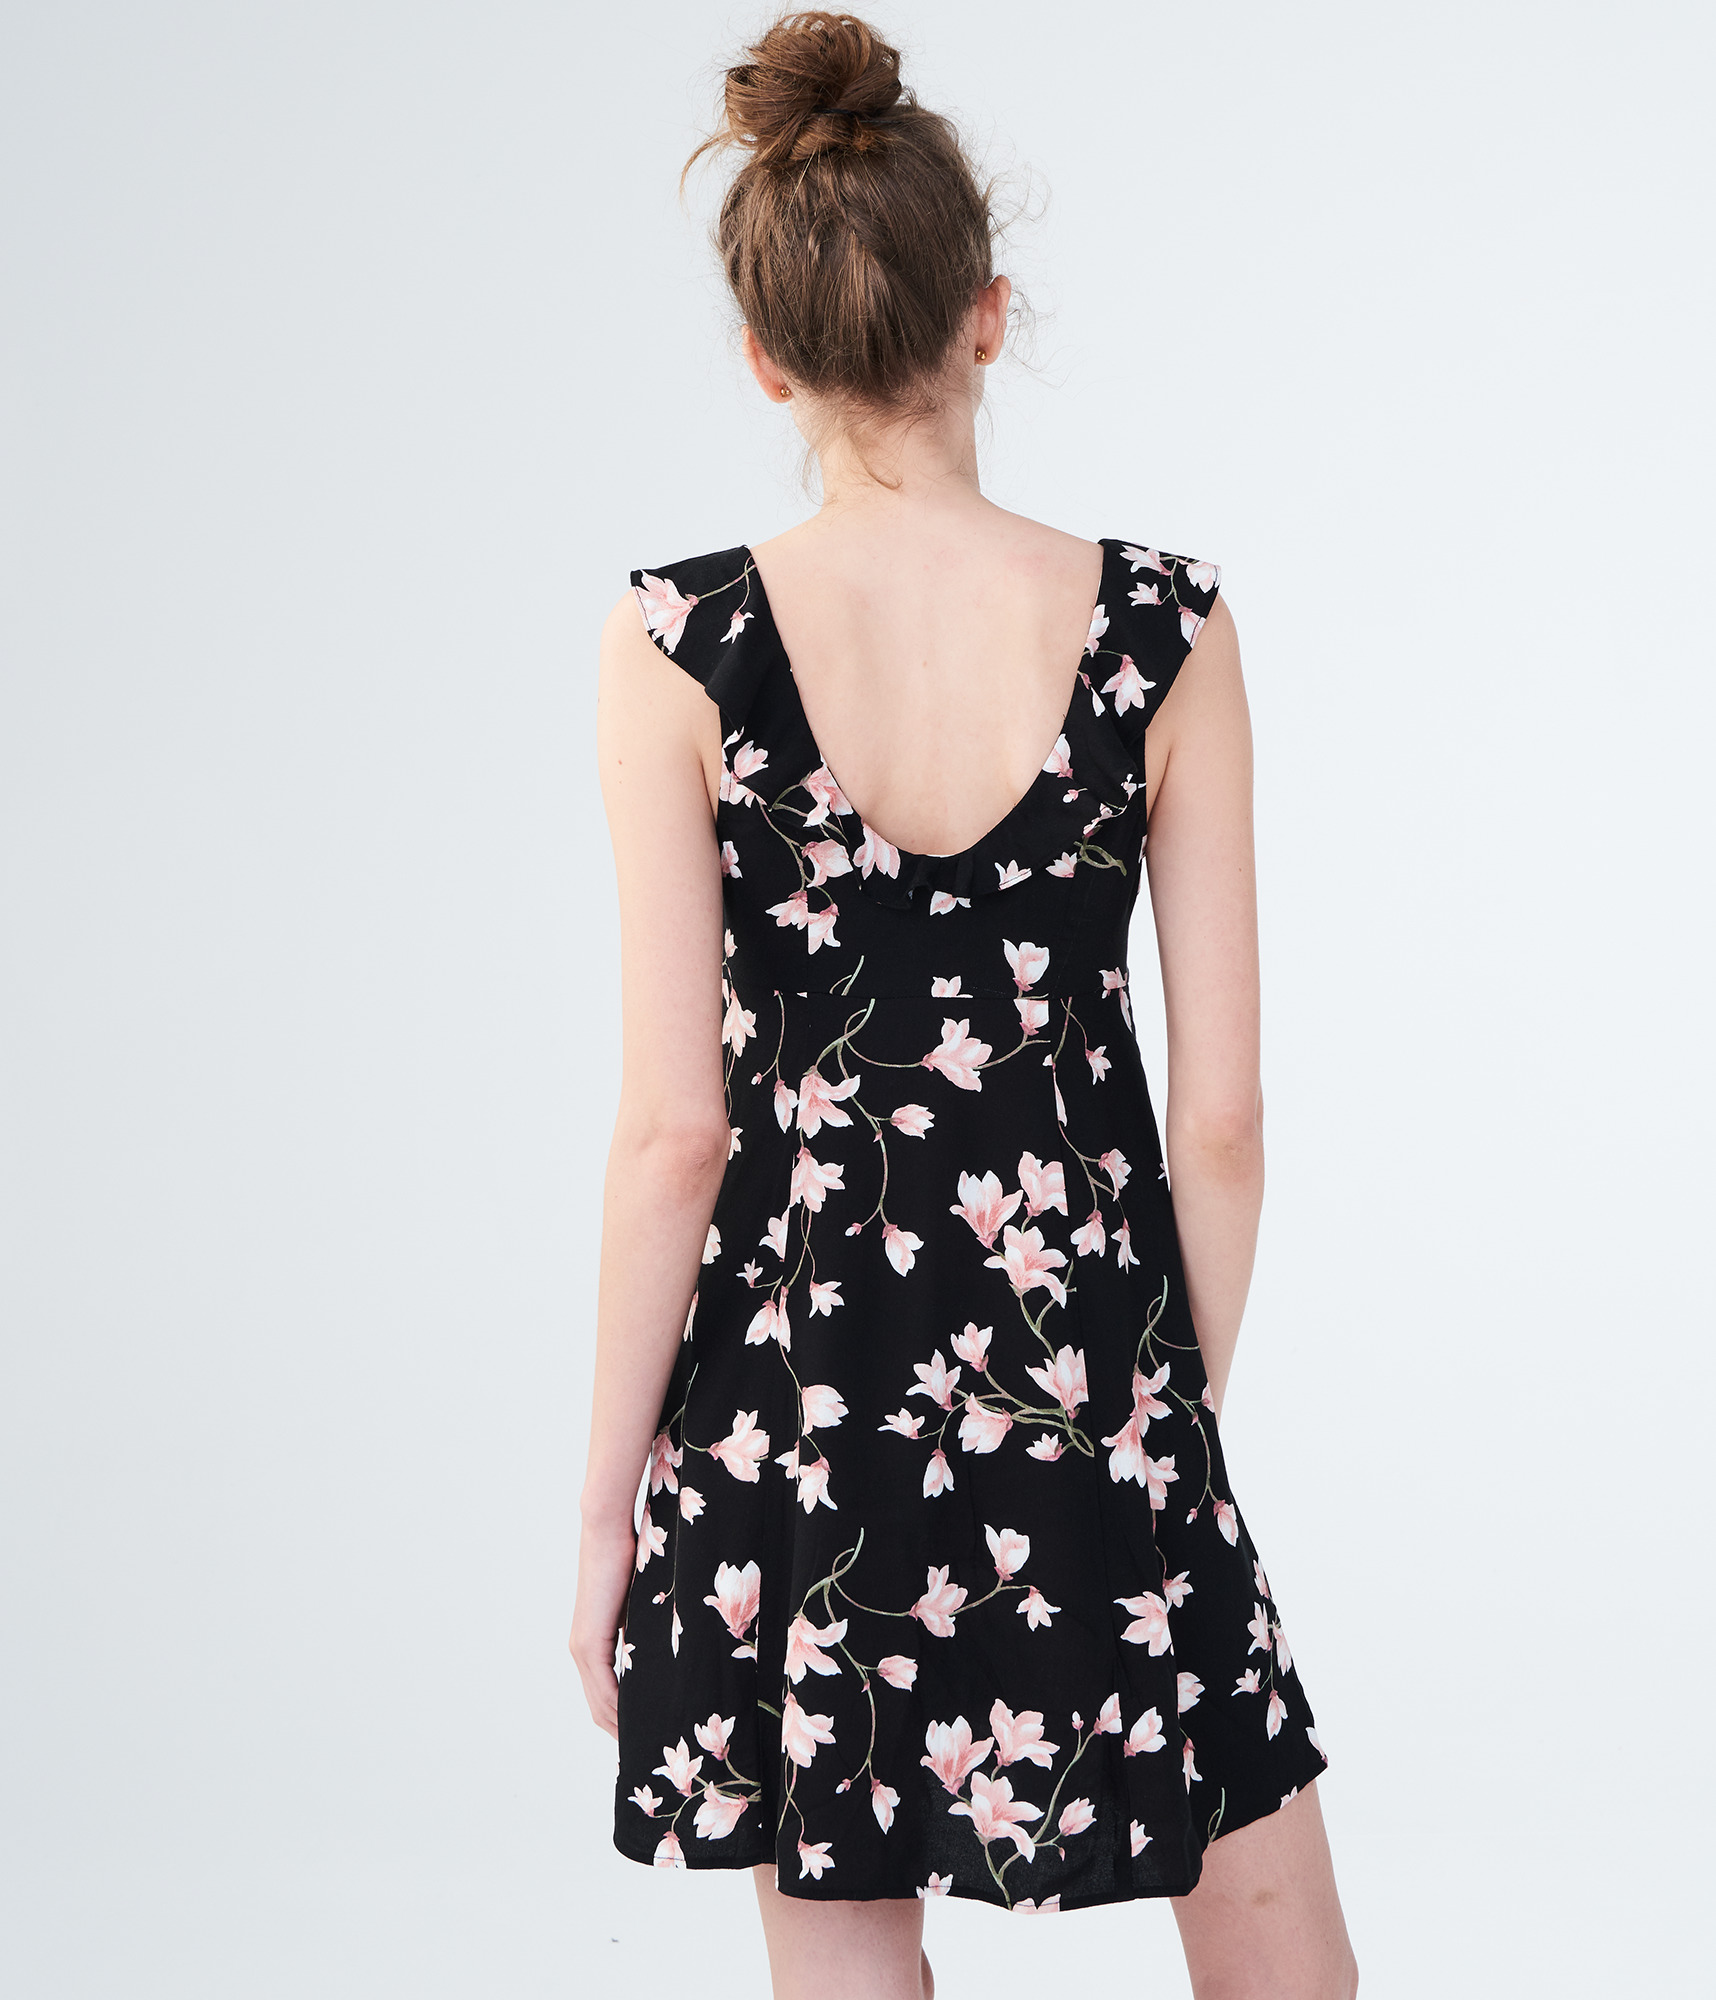 aeropostale-womens-floral-scoop-neck-fit-amp-flare-dress thumbnail 8